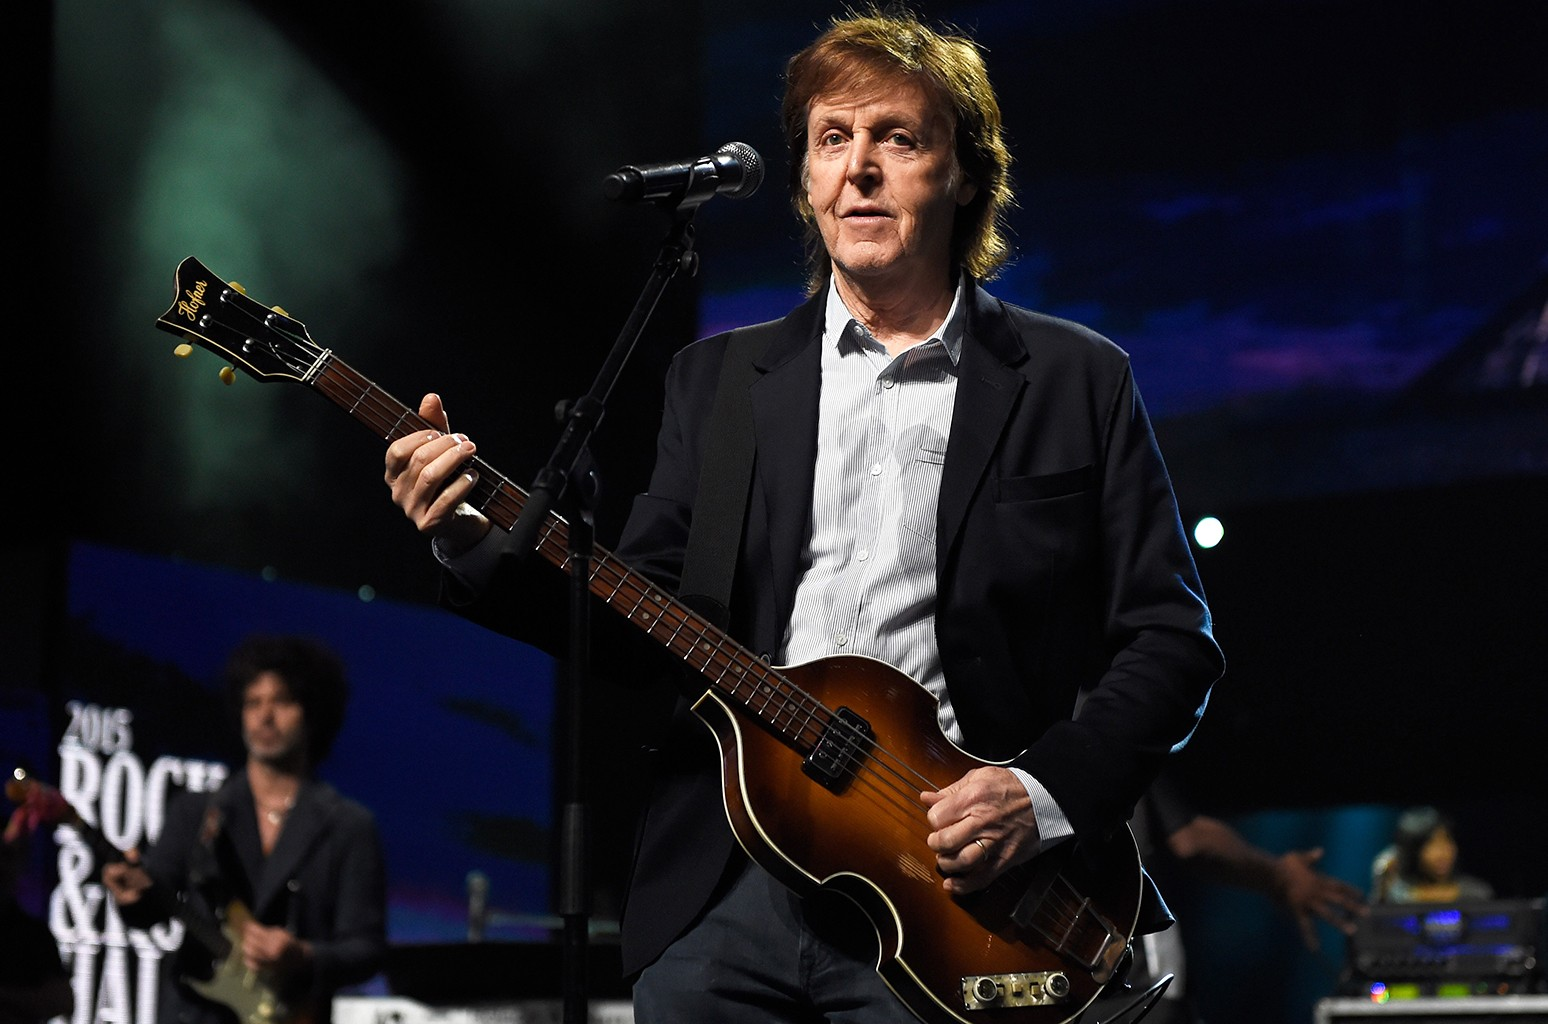 Paul McCartney at the 30th Annual Rock And Roll Hall Of Fame